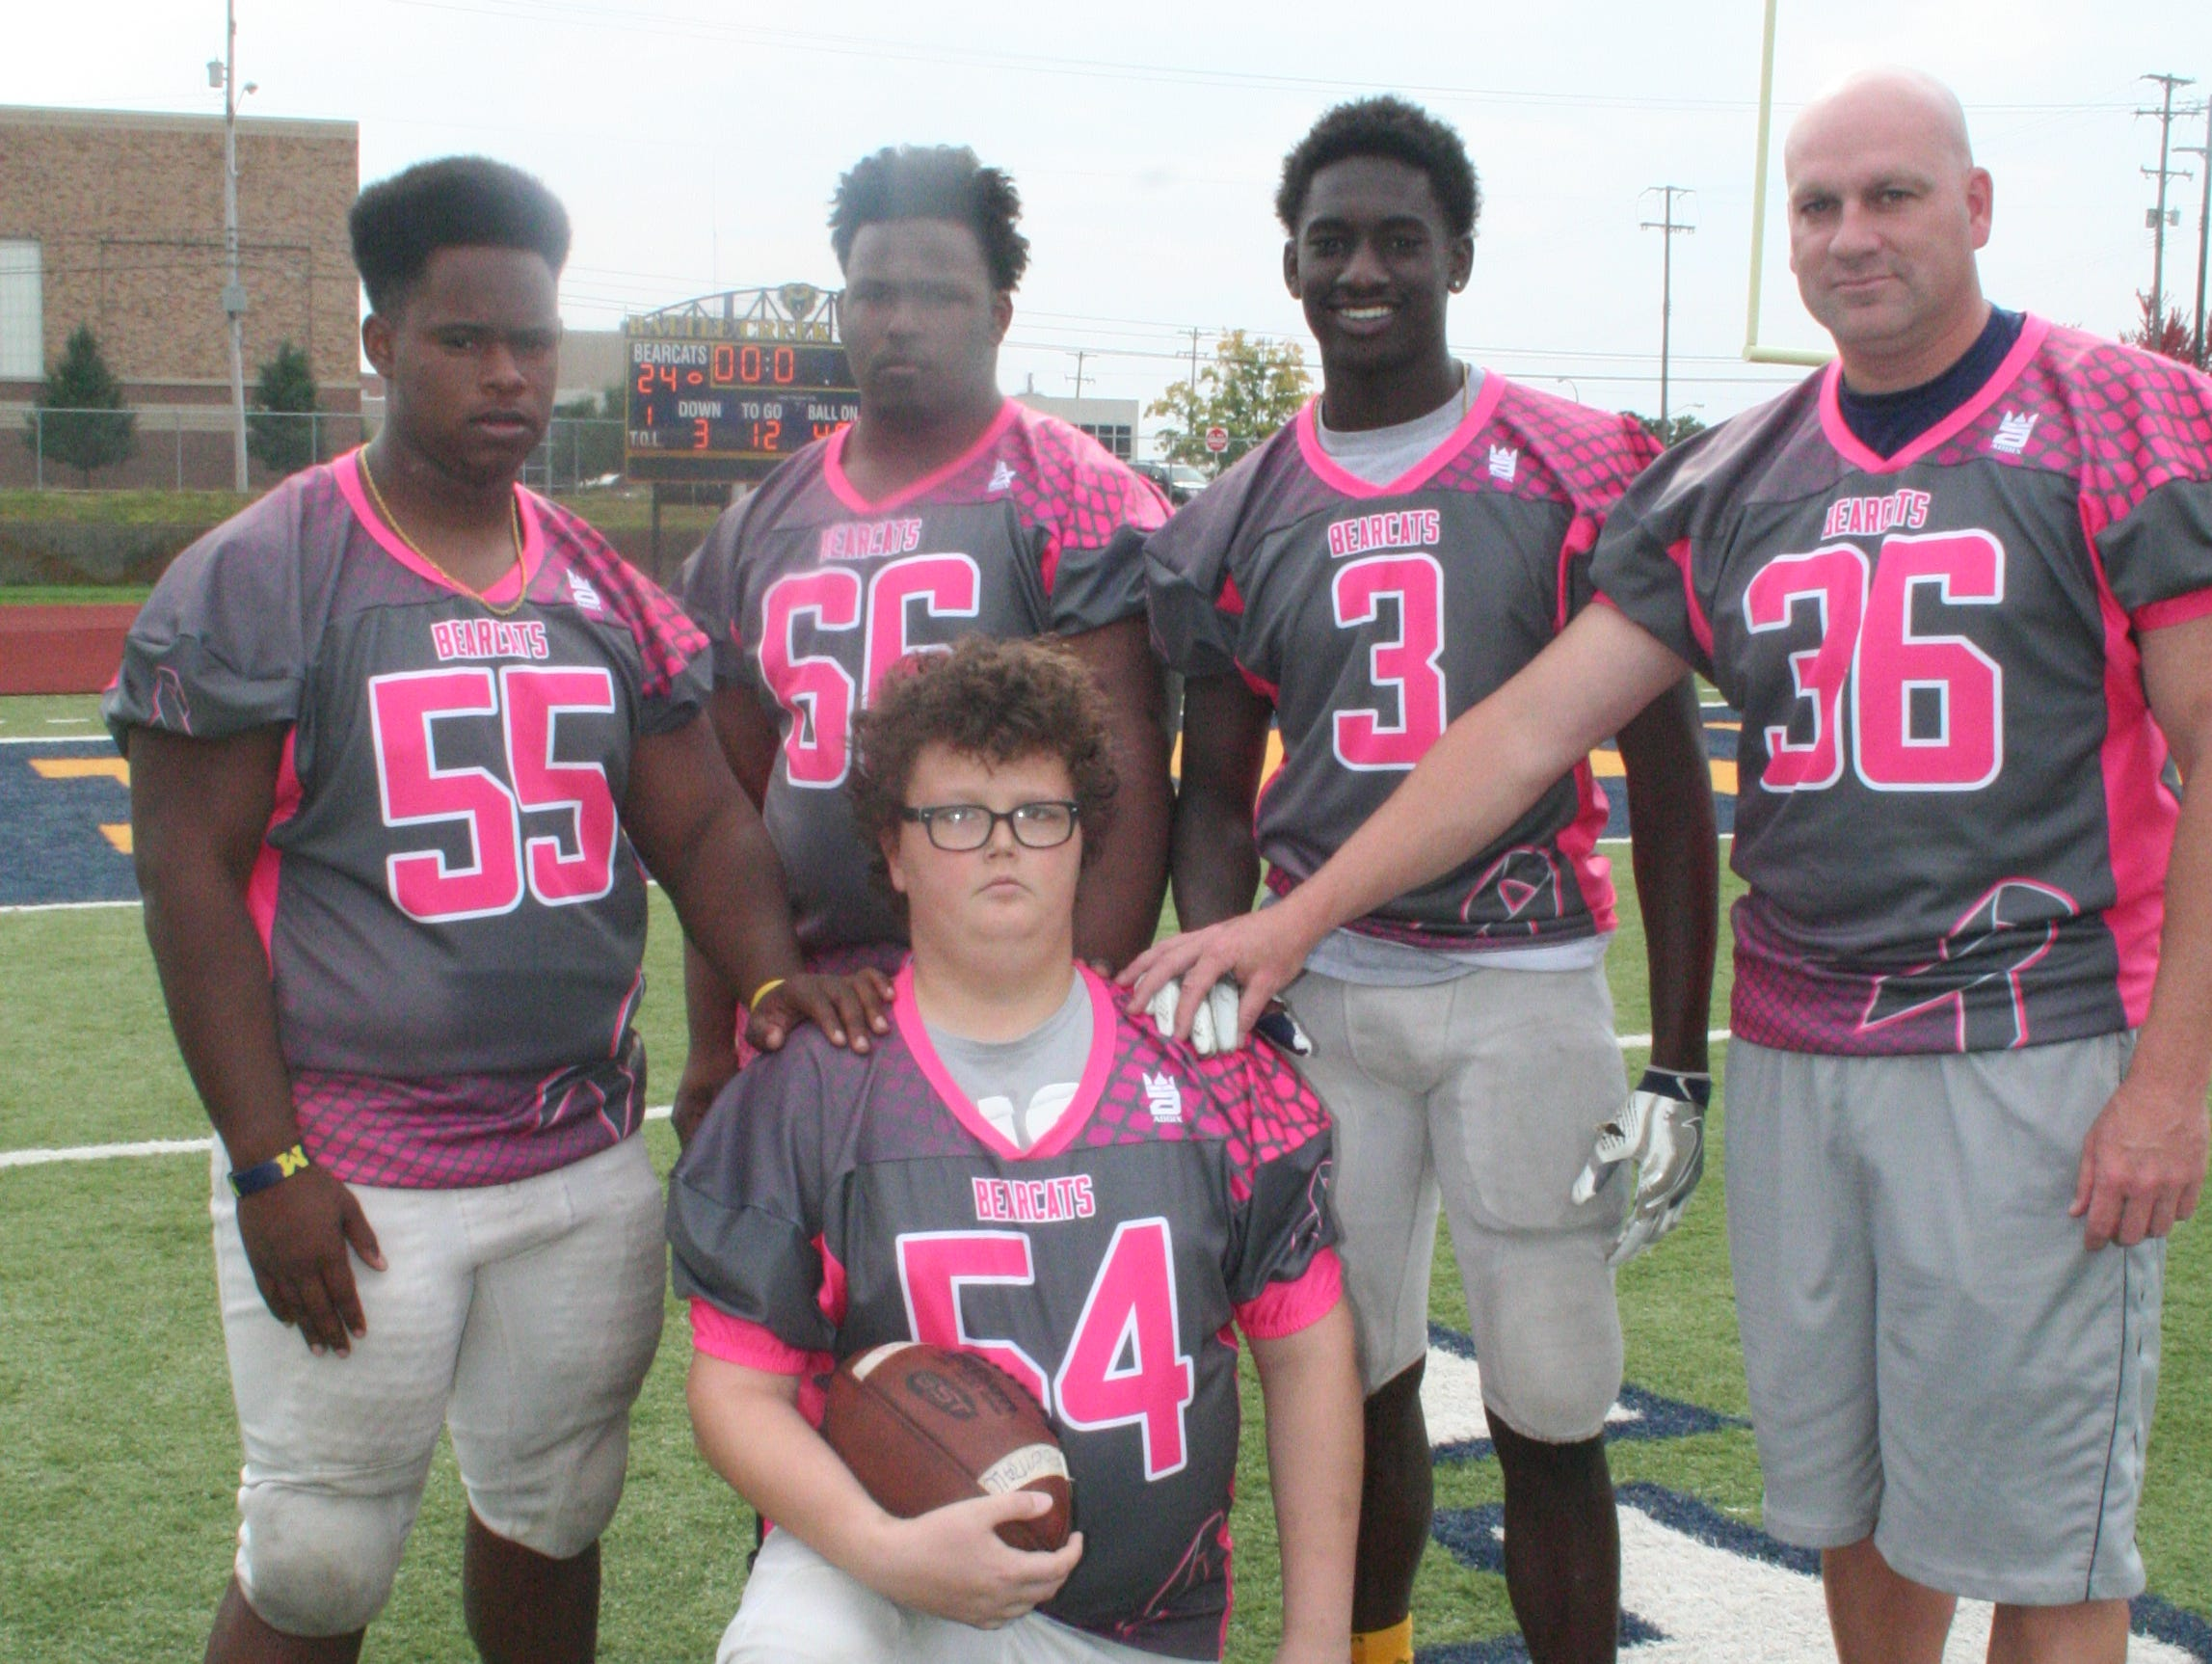 Battle Creek Central will host a Grey/Pink Game to raise money for freshman Michael Miller, front, who has brain cancer. He is joined by varsity players, from left, Wisdom Morris, Jaylen Walker, Austin McKinney and BCC Coach Lorin Granger.